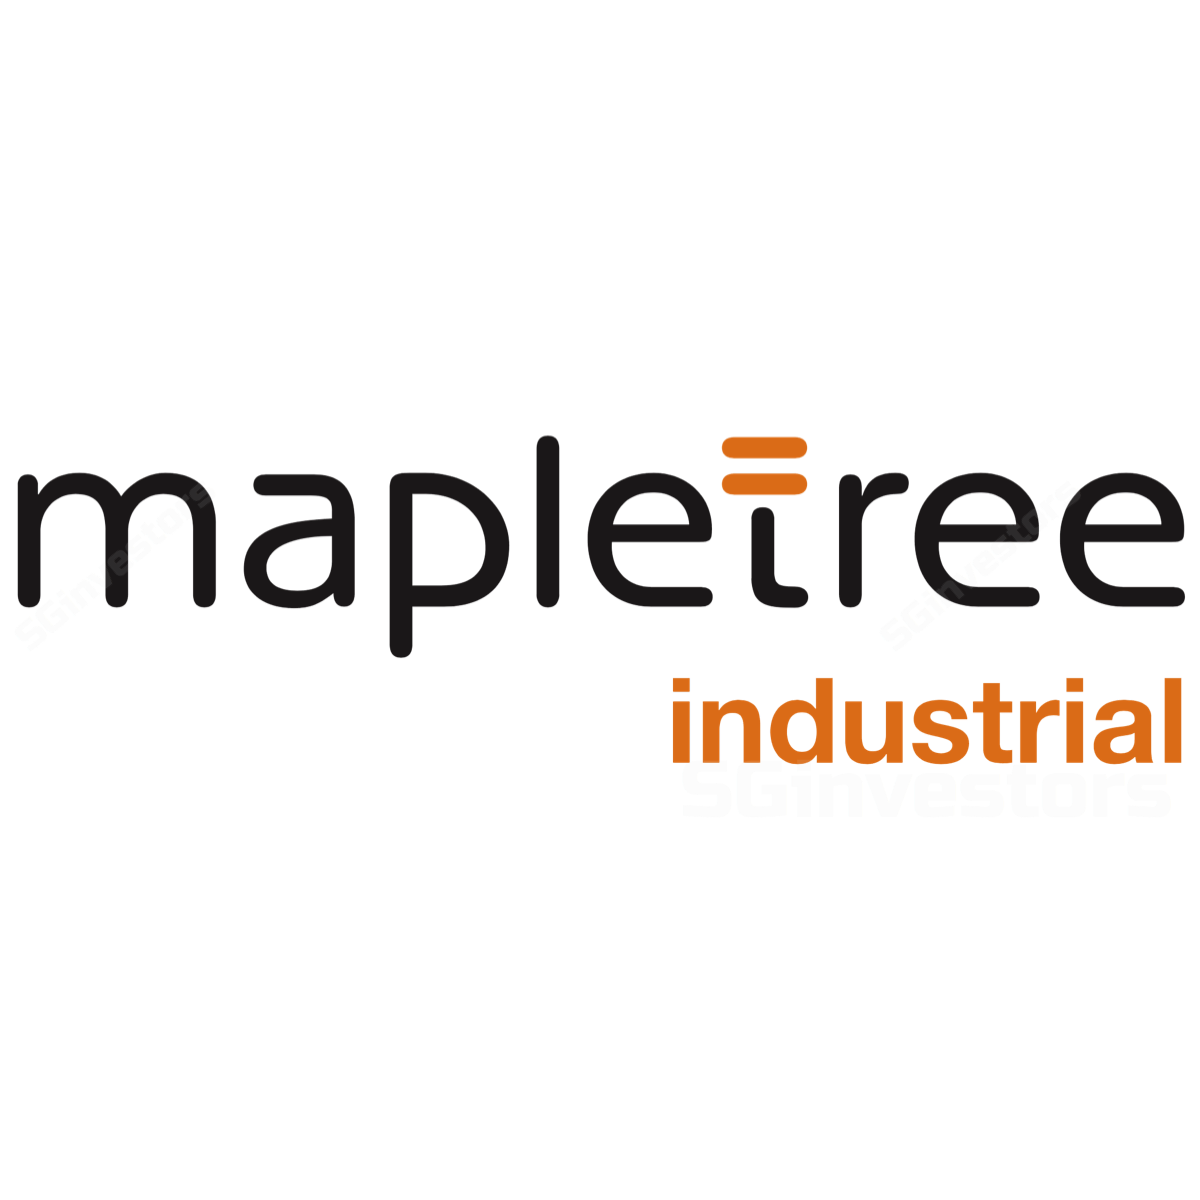 Mapletree Industrial Trust - DBS Vickers 2017-01-25: Inorganic growth to drive share price higher